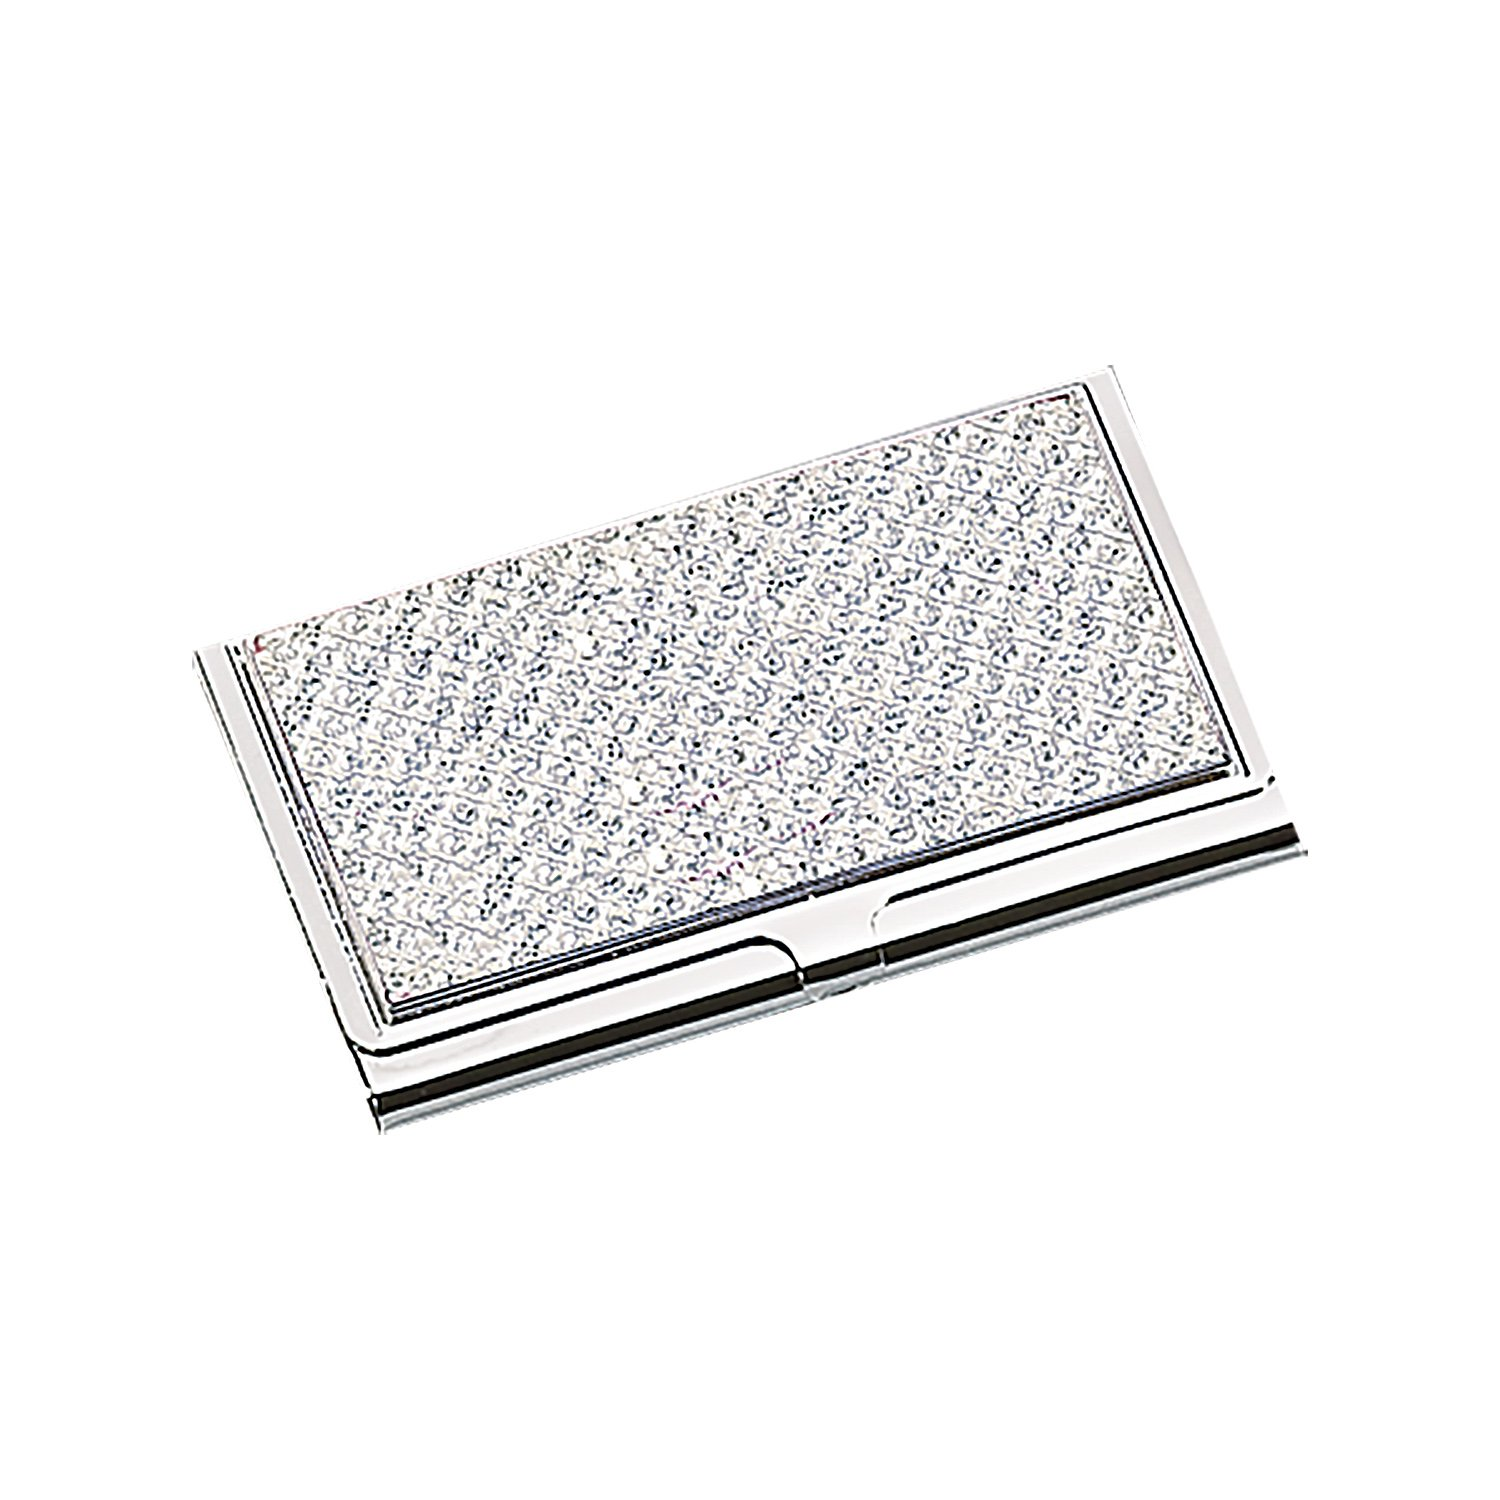 Amazon elegance silver white glitter business card holder amazon elegance silver white glitter business card holder home kitchen magicingreecefo Gallery